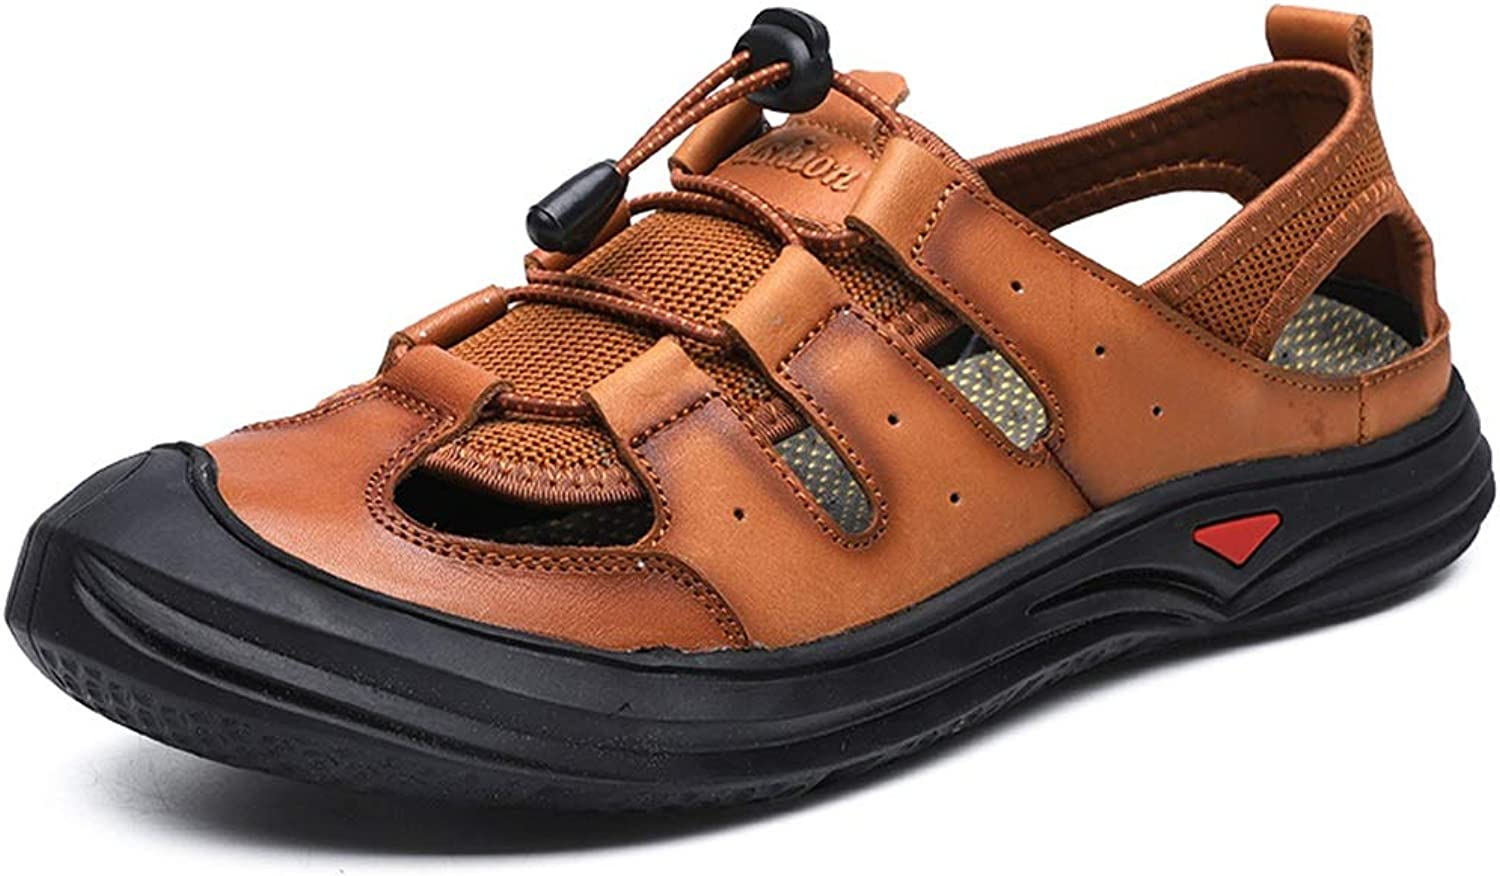 Outdoor Sport shoes Hiking Sandals For Men Genuine Leather Perforated Beach shoes Anti-slip Flat Collision Avoidance Round Close Toe Beach shoes Cricket shoes ( color   Brown , Size   8.5 UK )